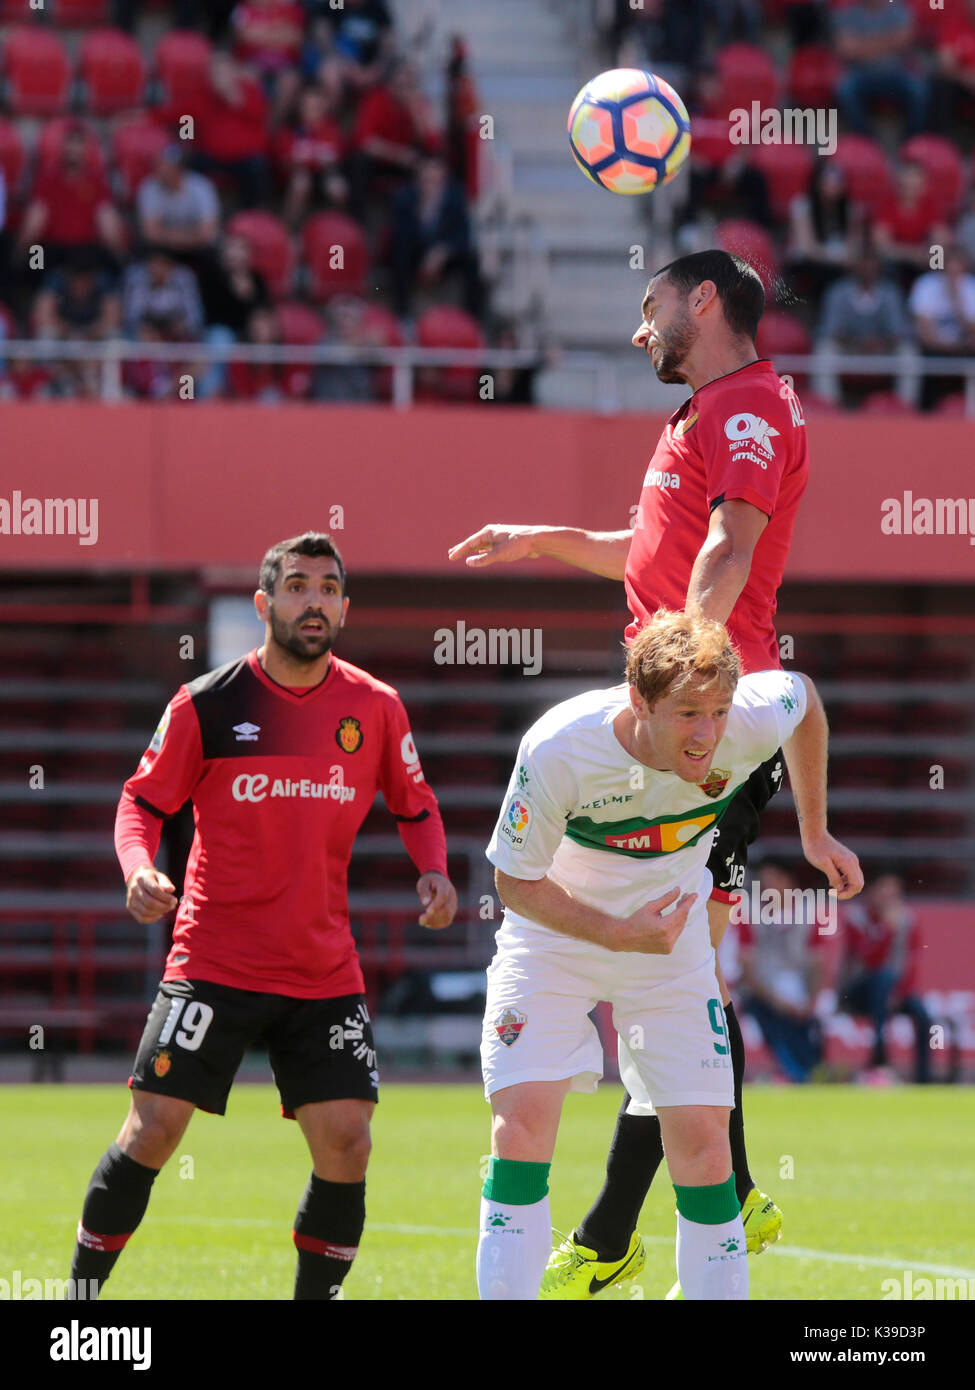 Real Mallorca player heads the ball against Sevilla atlético player during a match in Mallorca. - Stock Image